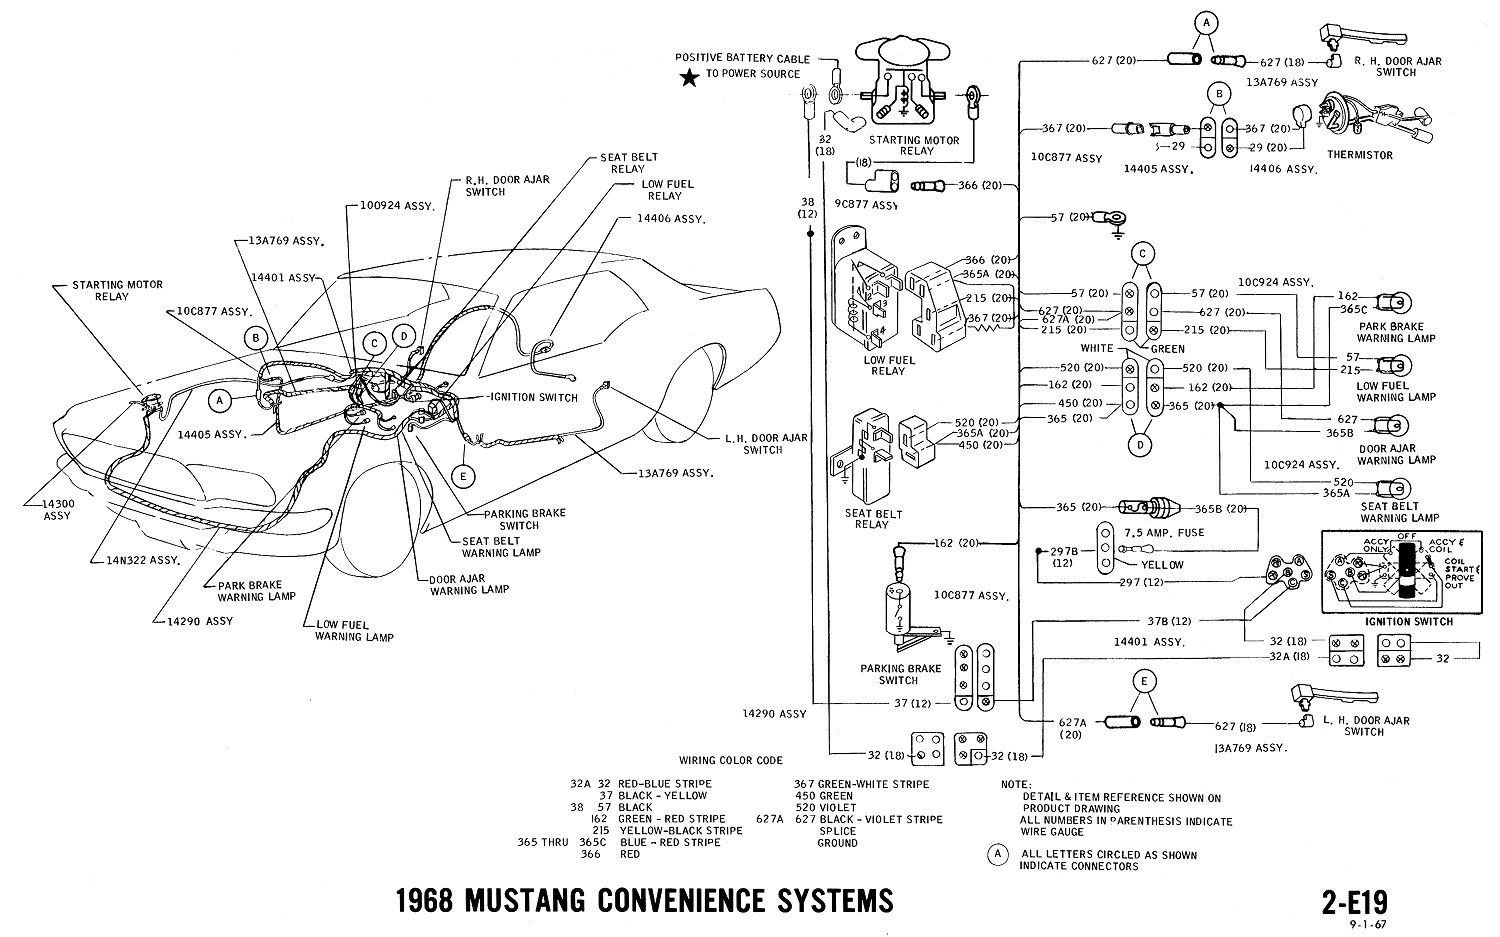 1964 ford thunderbird alternator wiring diagram with 1967 Mustang Wiring And Vacuum Diagrams Average Joe Restoration on 1965 Ford F100 Dash Gauges Wiring besides 1962 Ford Tractor Wiring Diagram likewise 95 Chevy 6 5 Fuel Pump Relay Location further 1967 Mustang Wiring And Vacuum Diagrams Average Joe Restoration besides 1963 Cadillac Fuse Box.